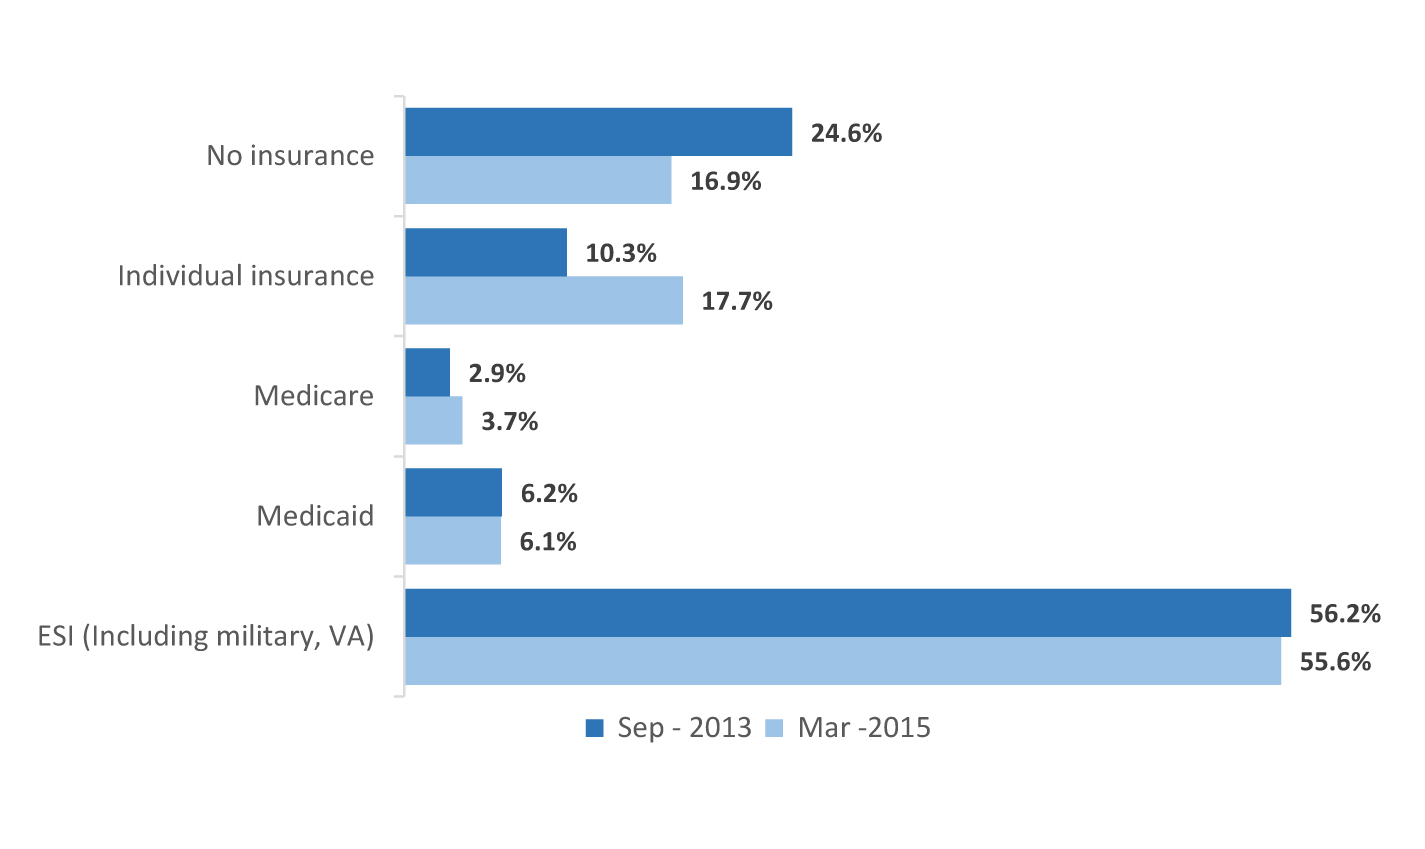 Figure 2 shows the change in coverage by type of insurance coverage from immediately before the opening of the Marketplace through the second open enrollment period.